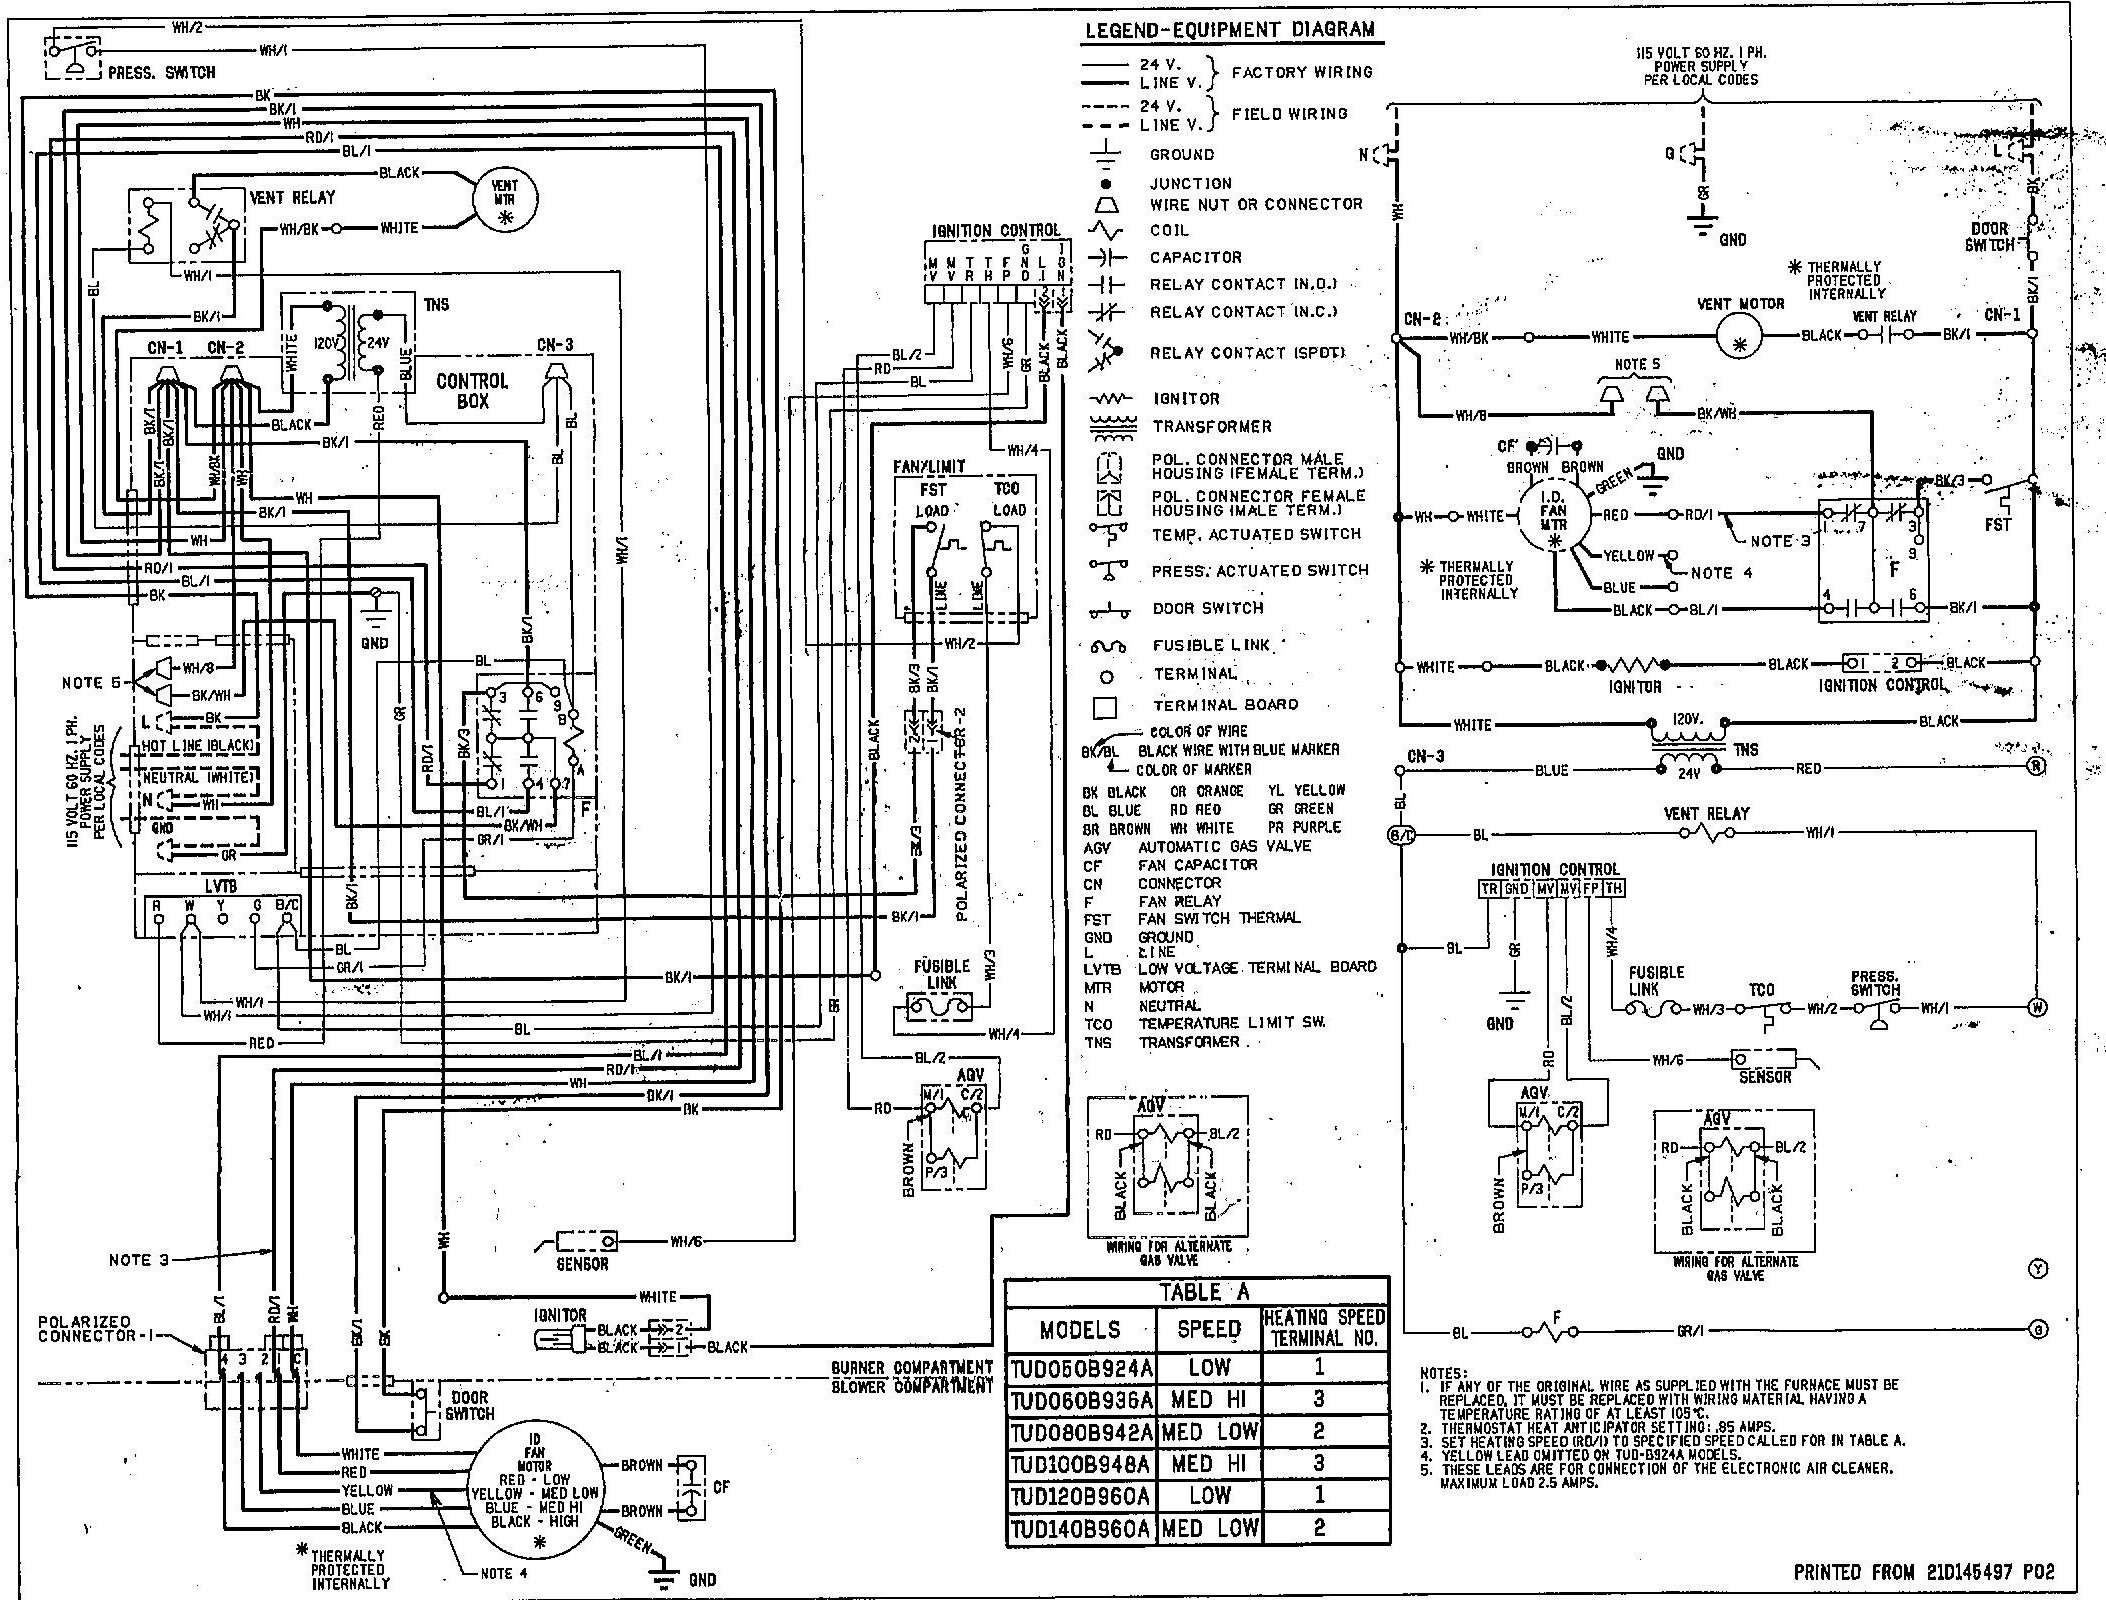 strongway electric cable hoist wiring diagram Download-Modine Gas Heater Wiring Diagram Best Beautiful Gas Heater Wiring Diagram Inspiration 6-k